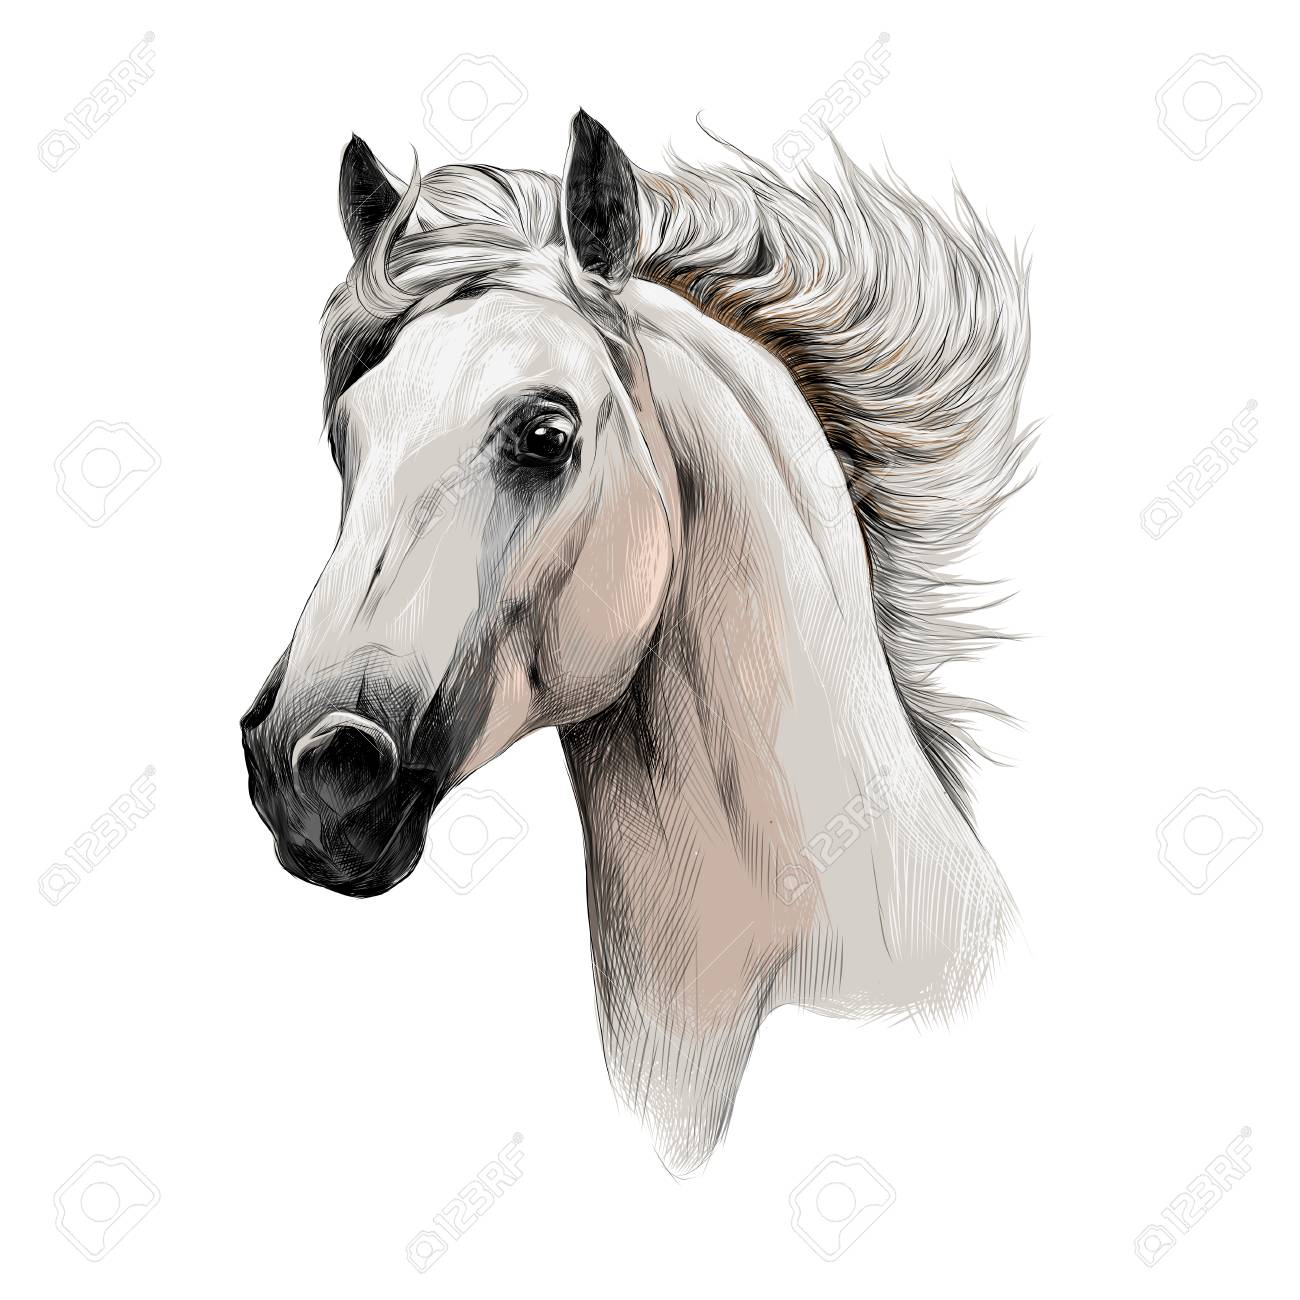 The White Horse Head Profile Sketch Vector Chart Color Picture Stock Photo Picture And Royalty Free Image Image 74392723